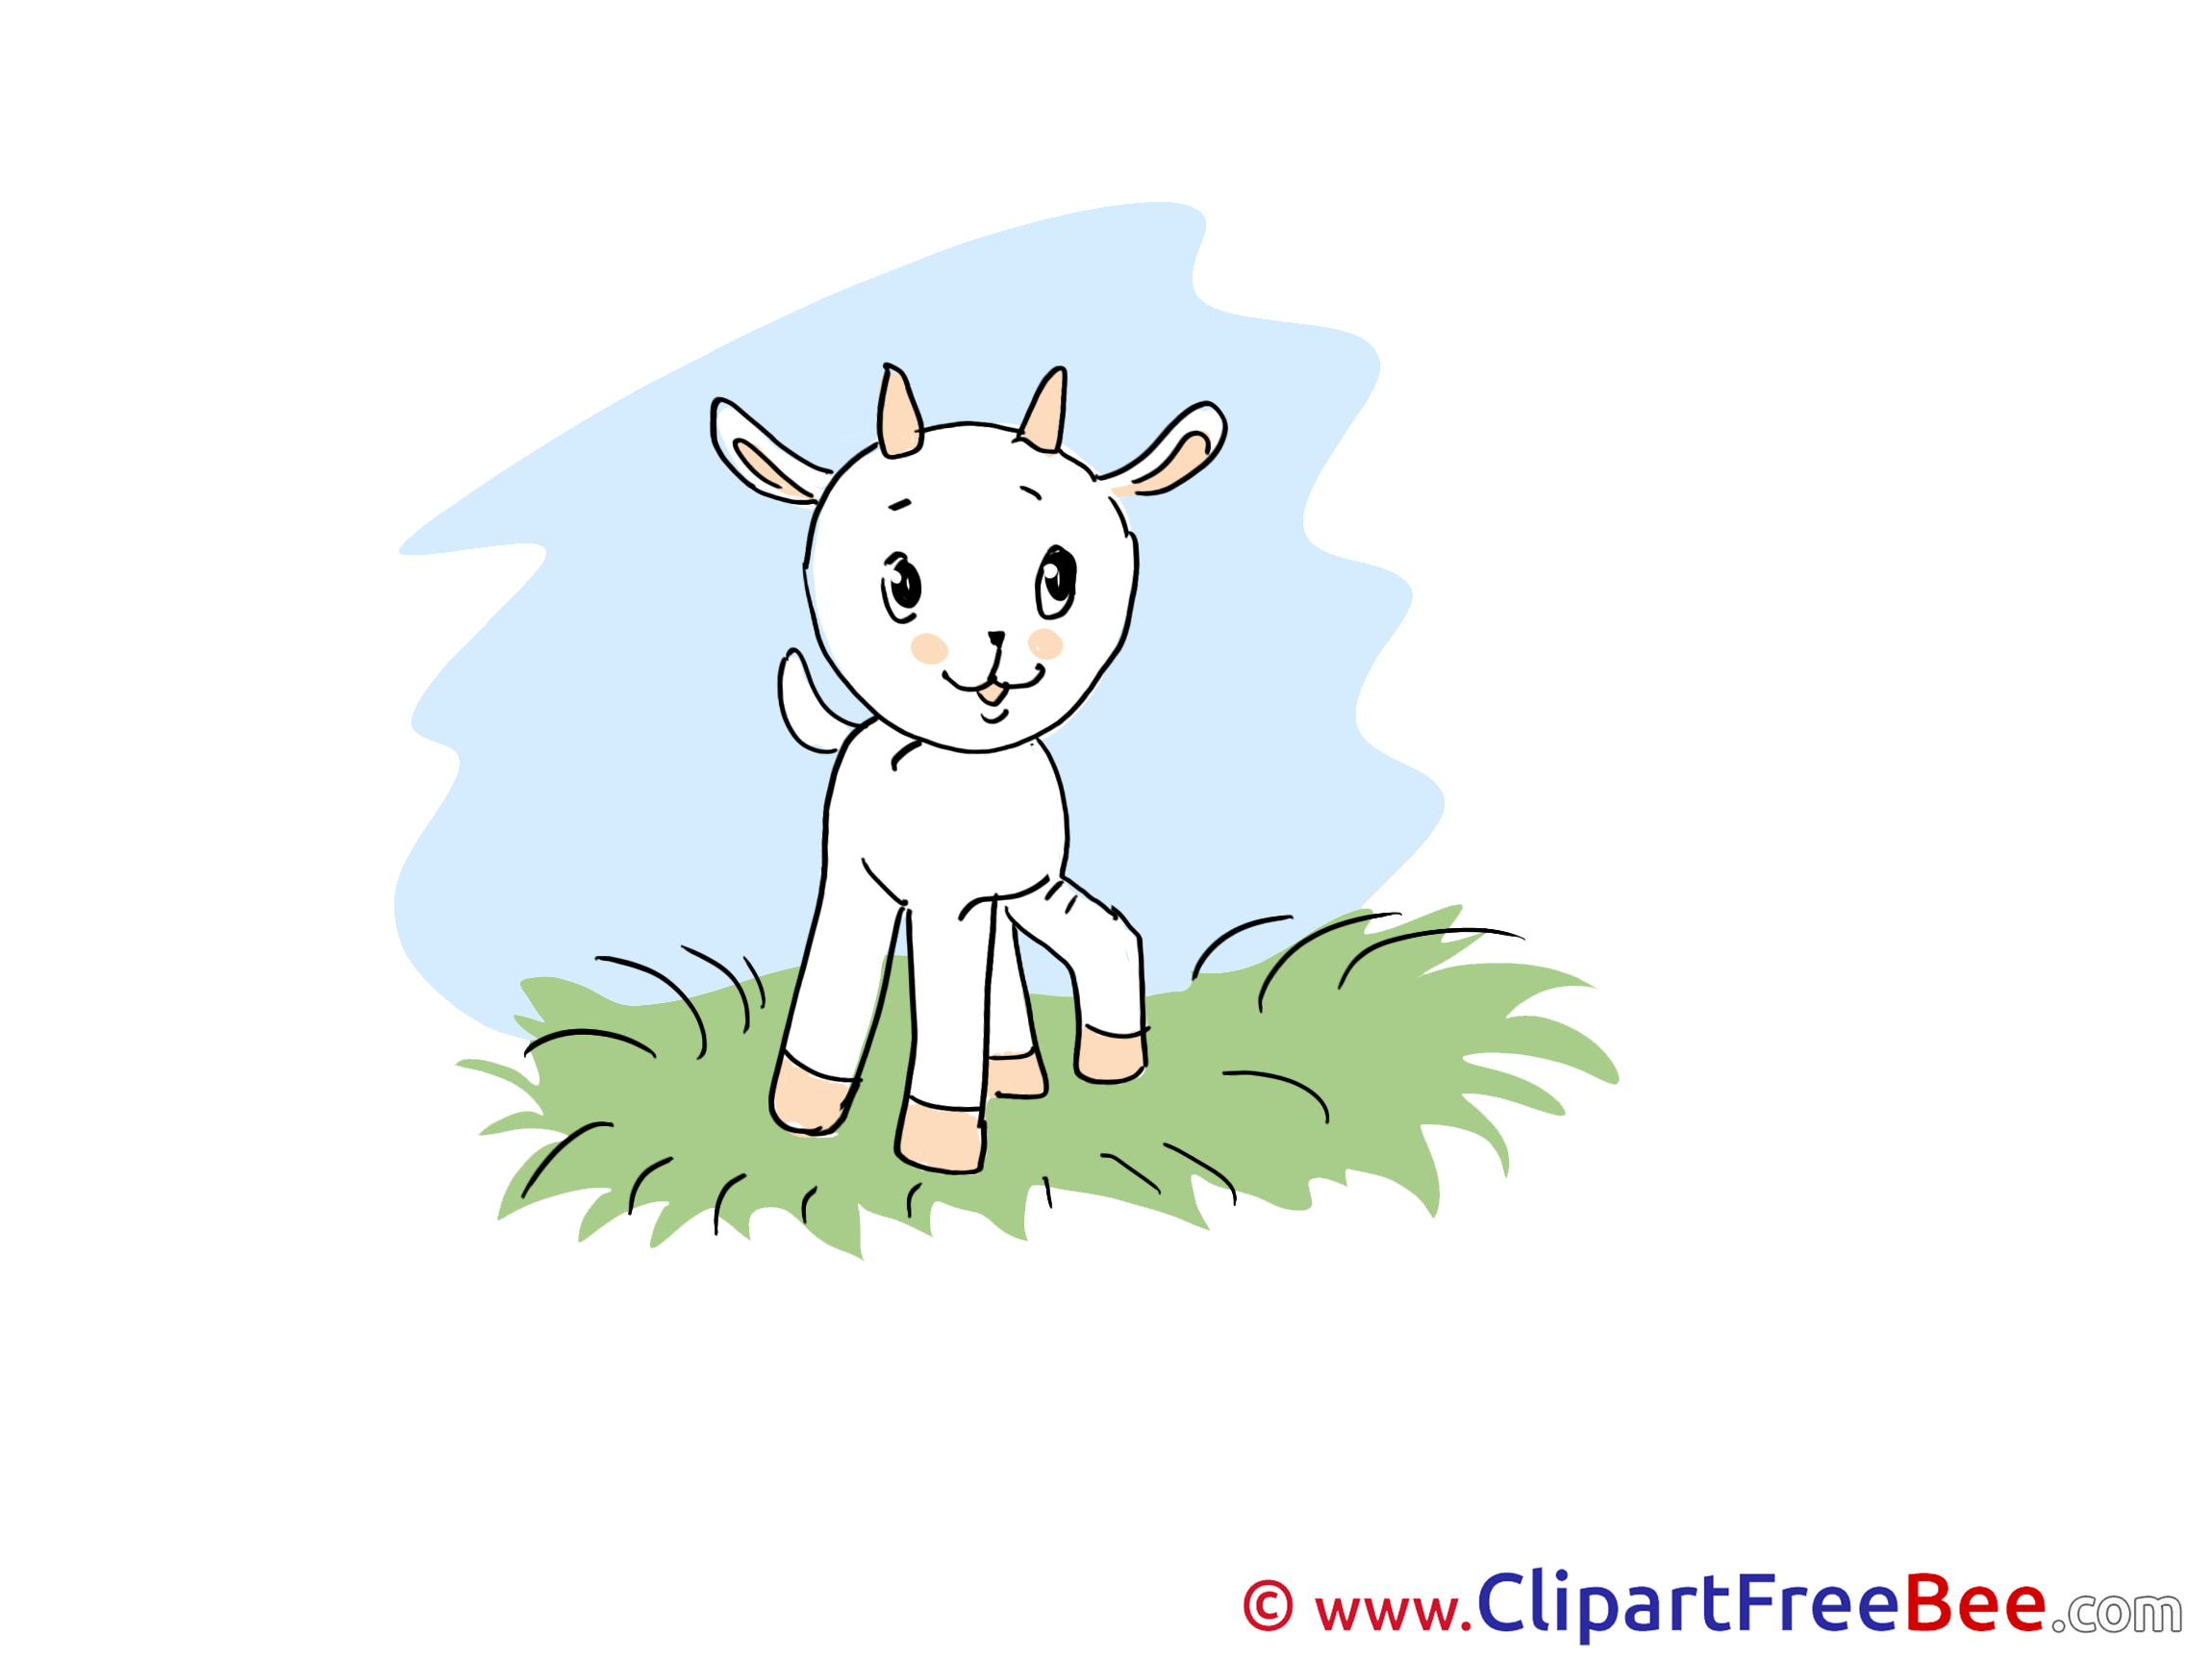 Grass Goatling download Clip Art for free